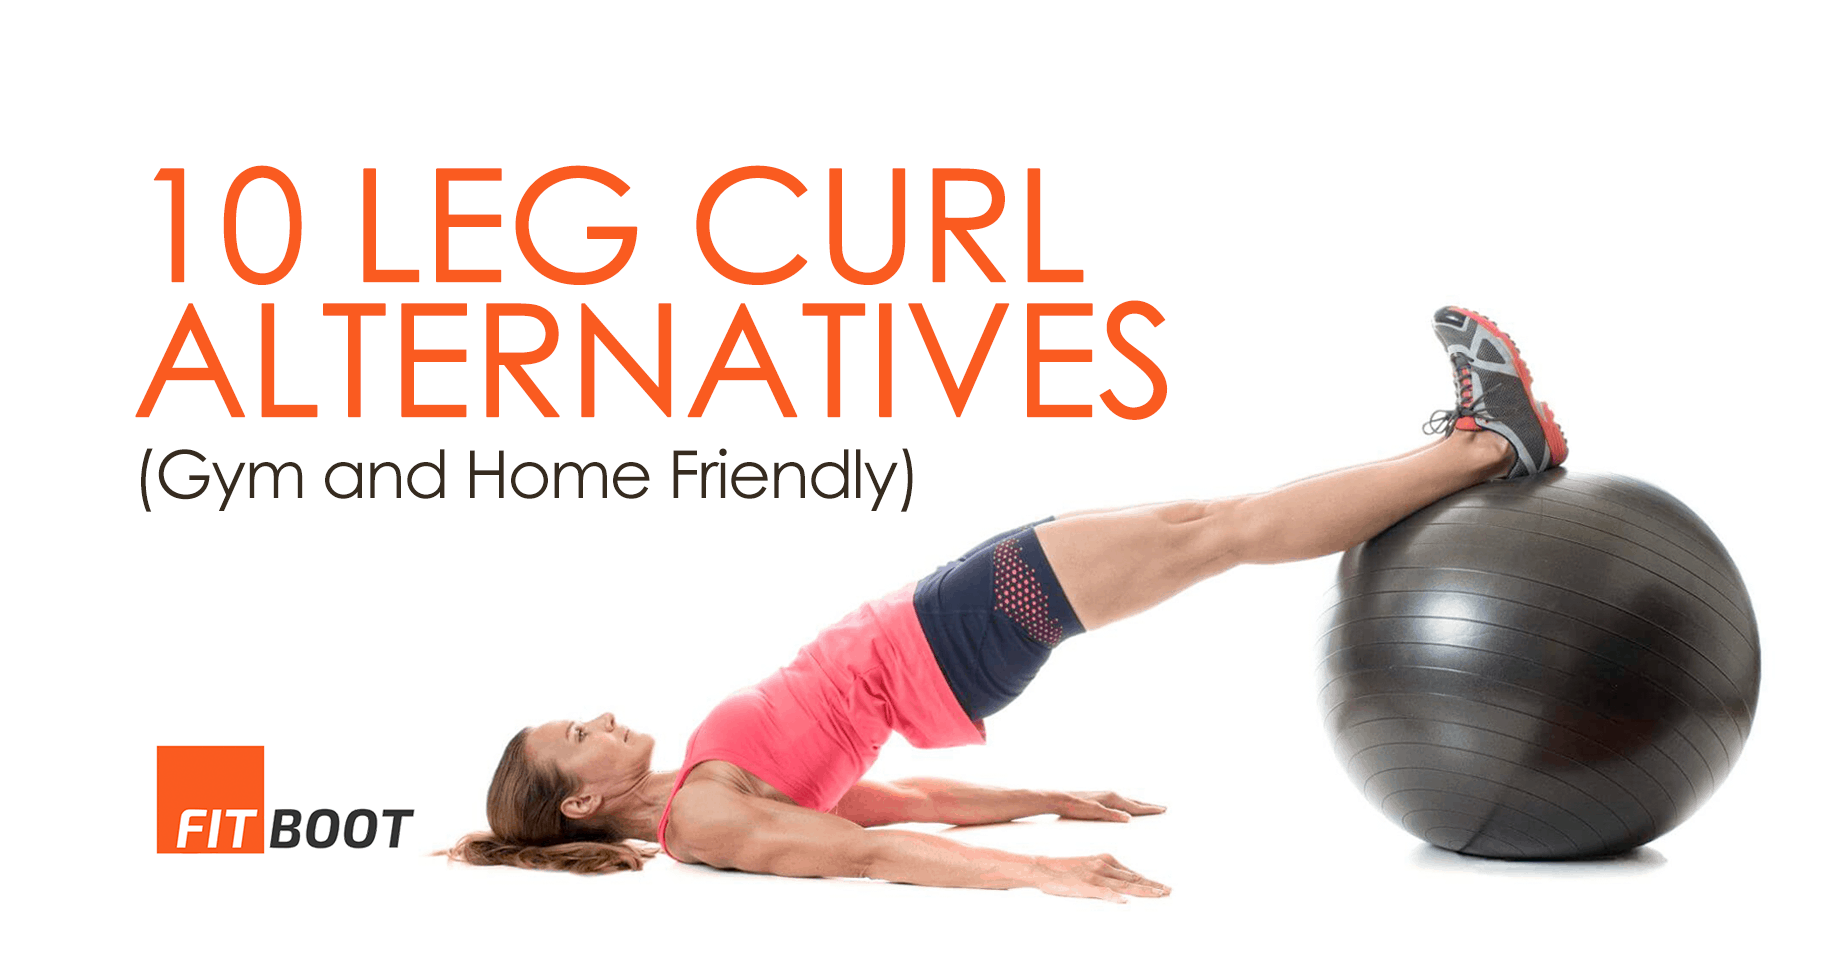 10 Leg Curl Alternatives (Gym and Home Friendly)